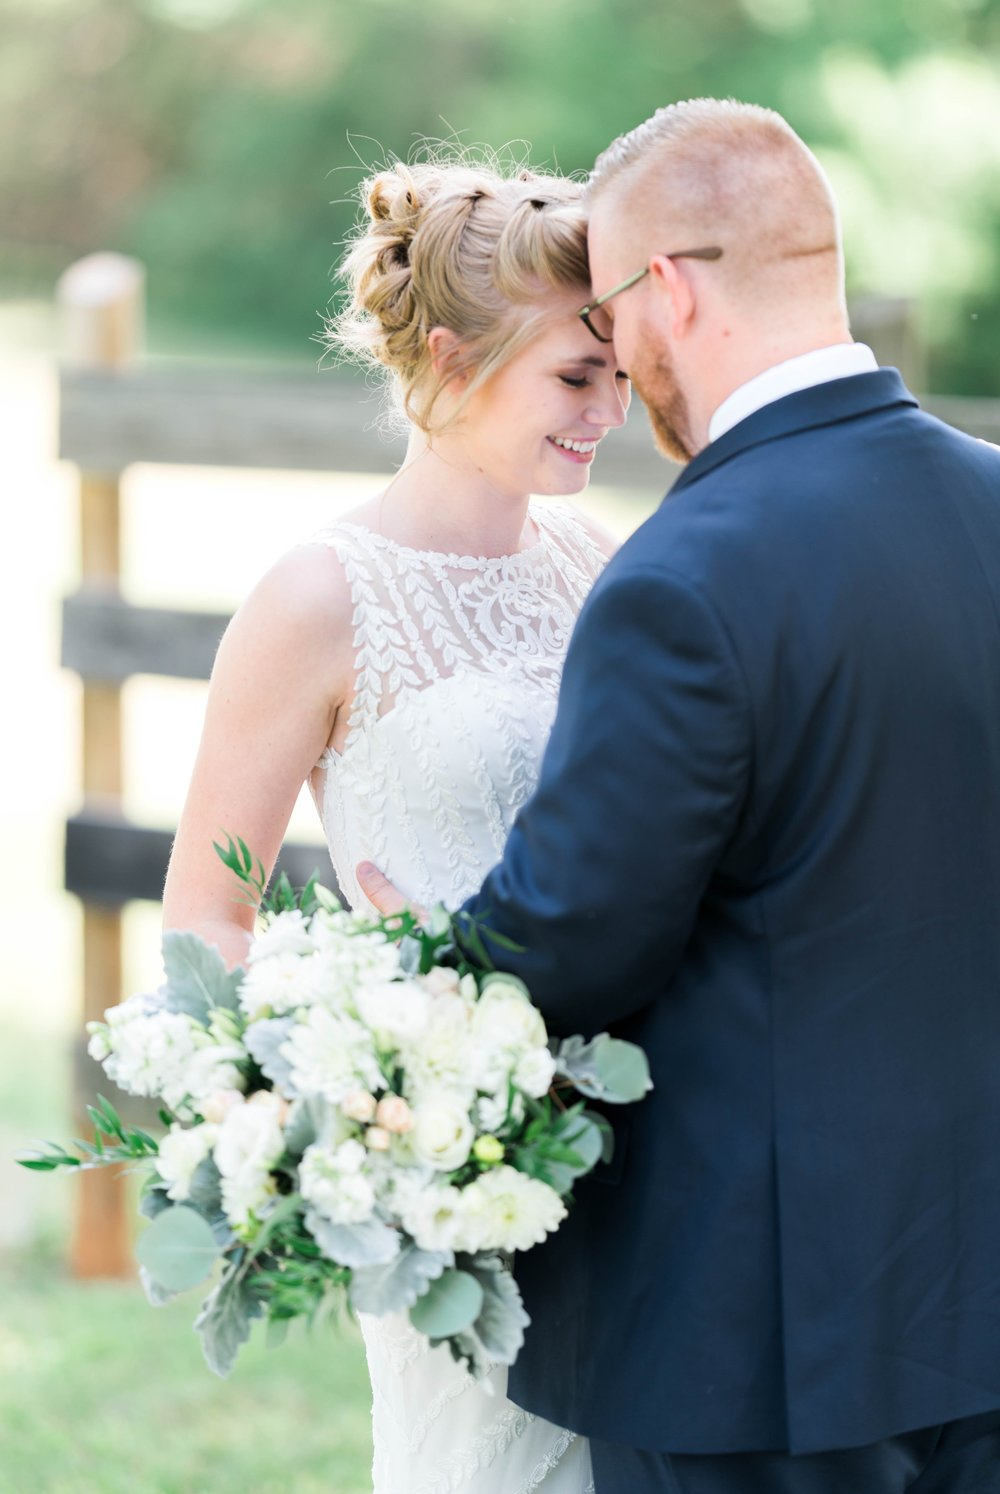 SorellaFarms_VirginiaWeddingPhotographer_BarnWedding_Lynchburgweddingphotographer_DanielleTyler 35.jpg